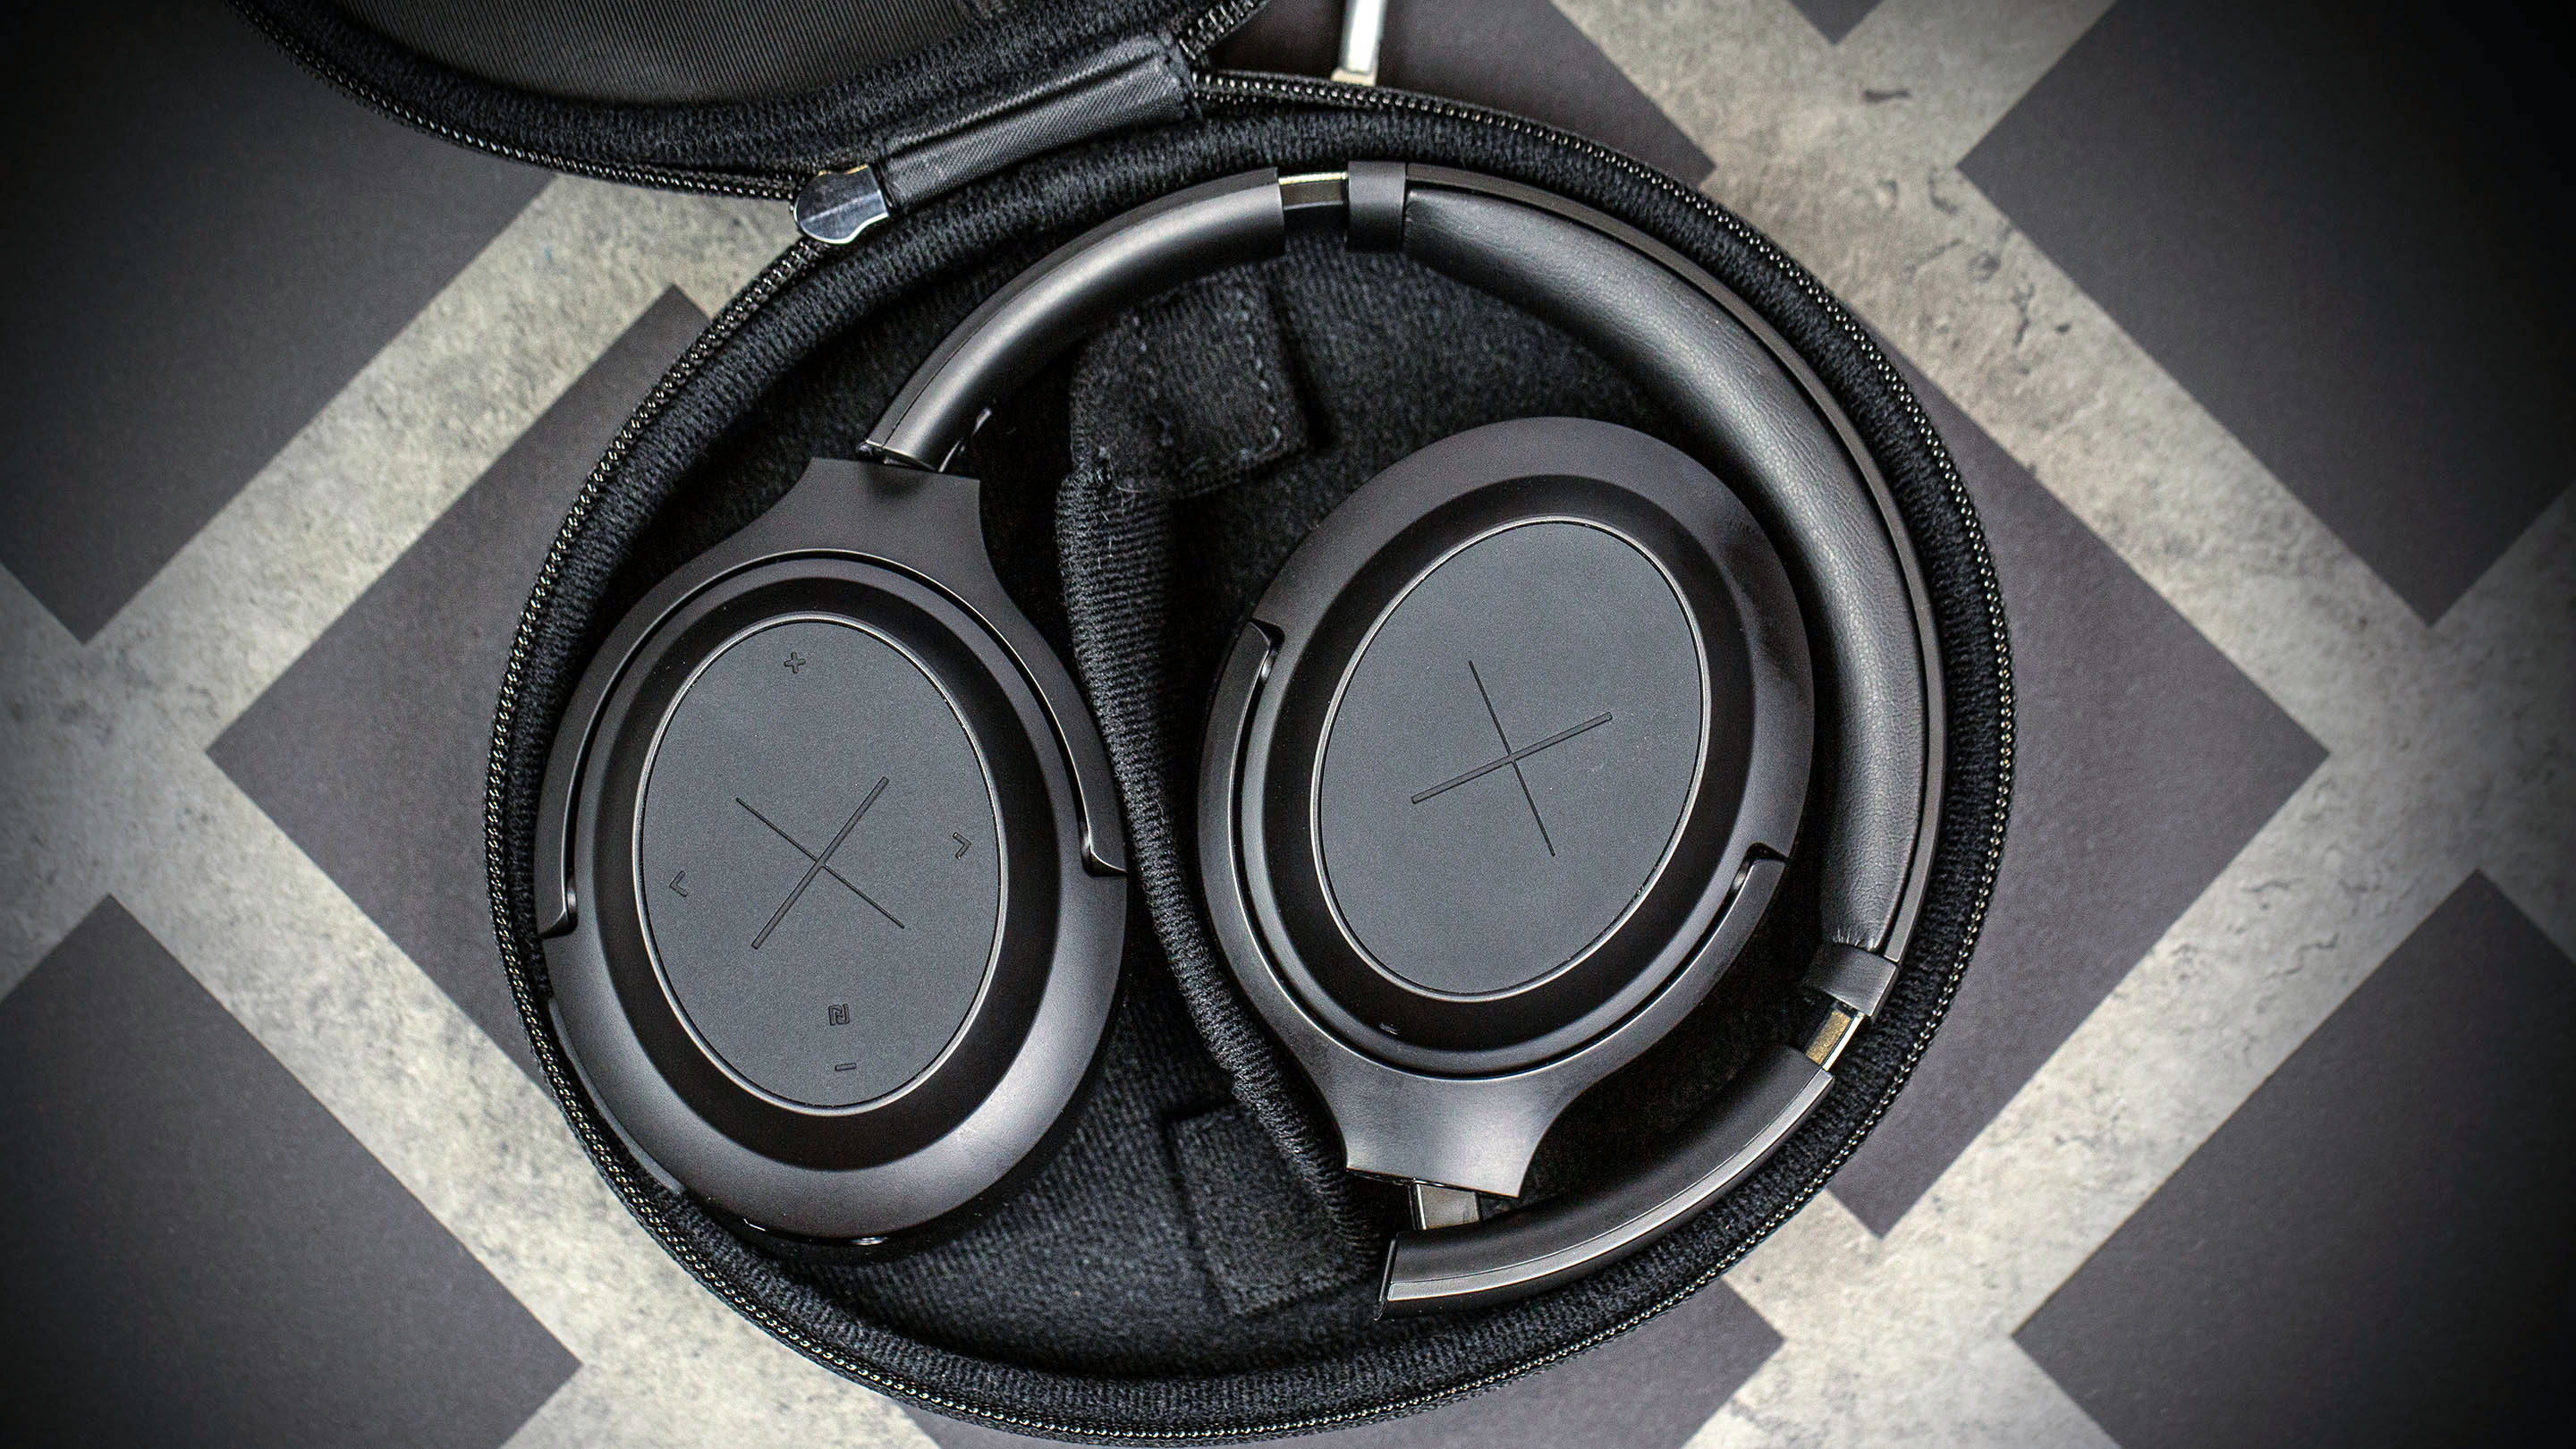 , Kygo A11/800 review: the ultimate headphones to immerse yourself in music, Next TGP